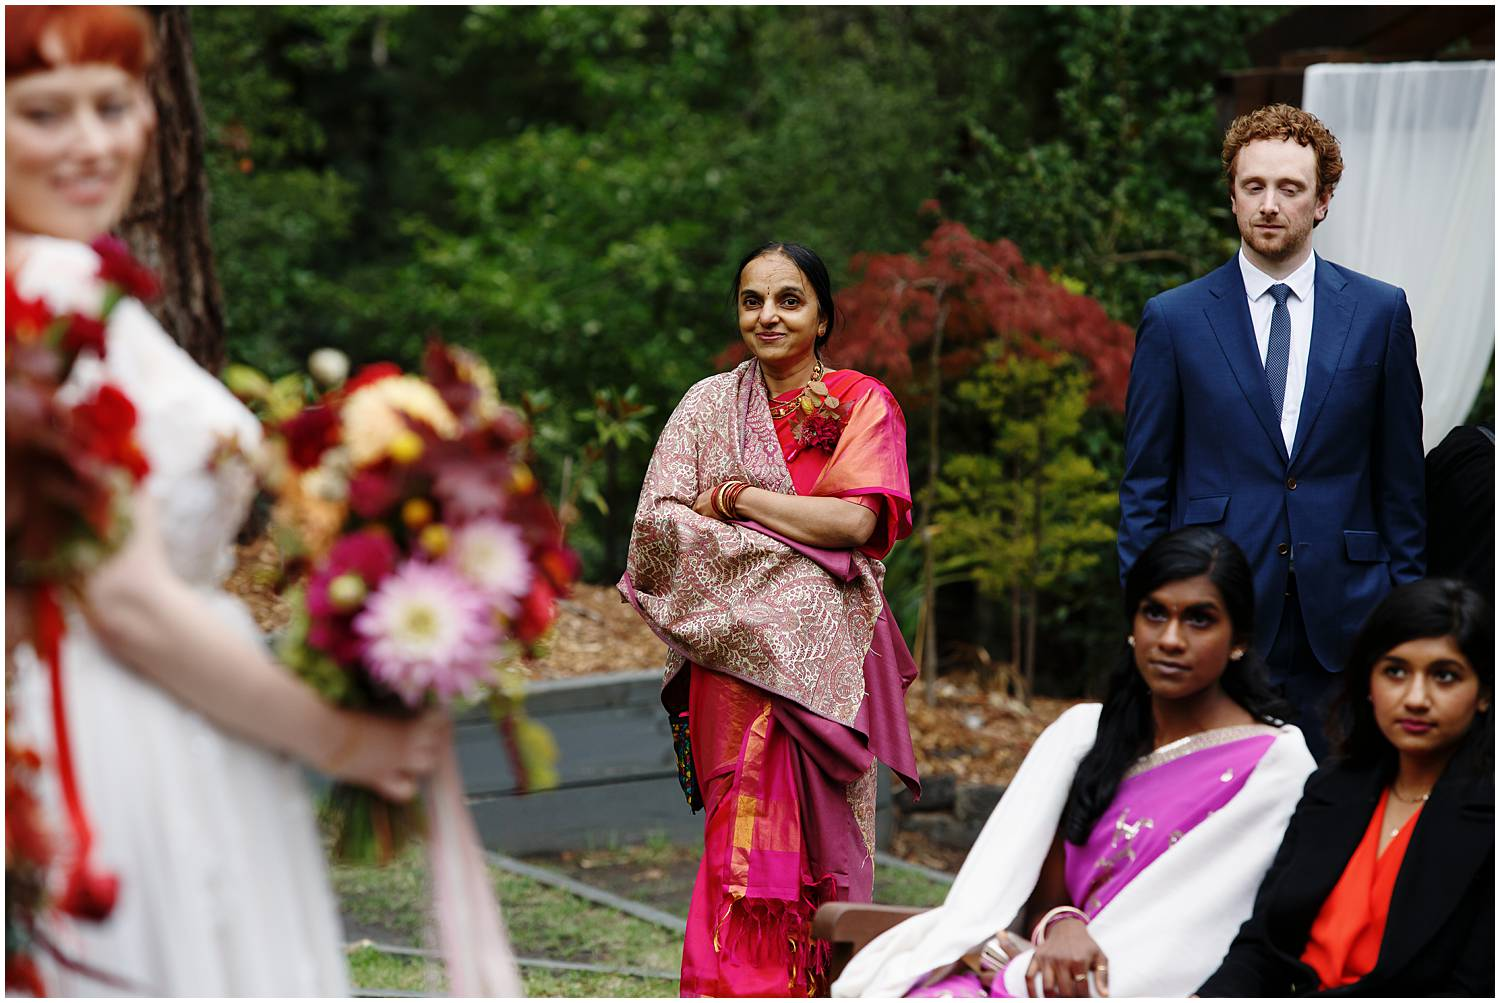 colourful autumn wedding melbourne024.jpg